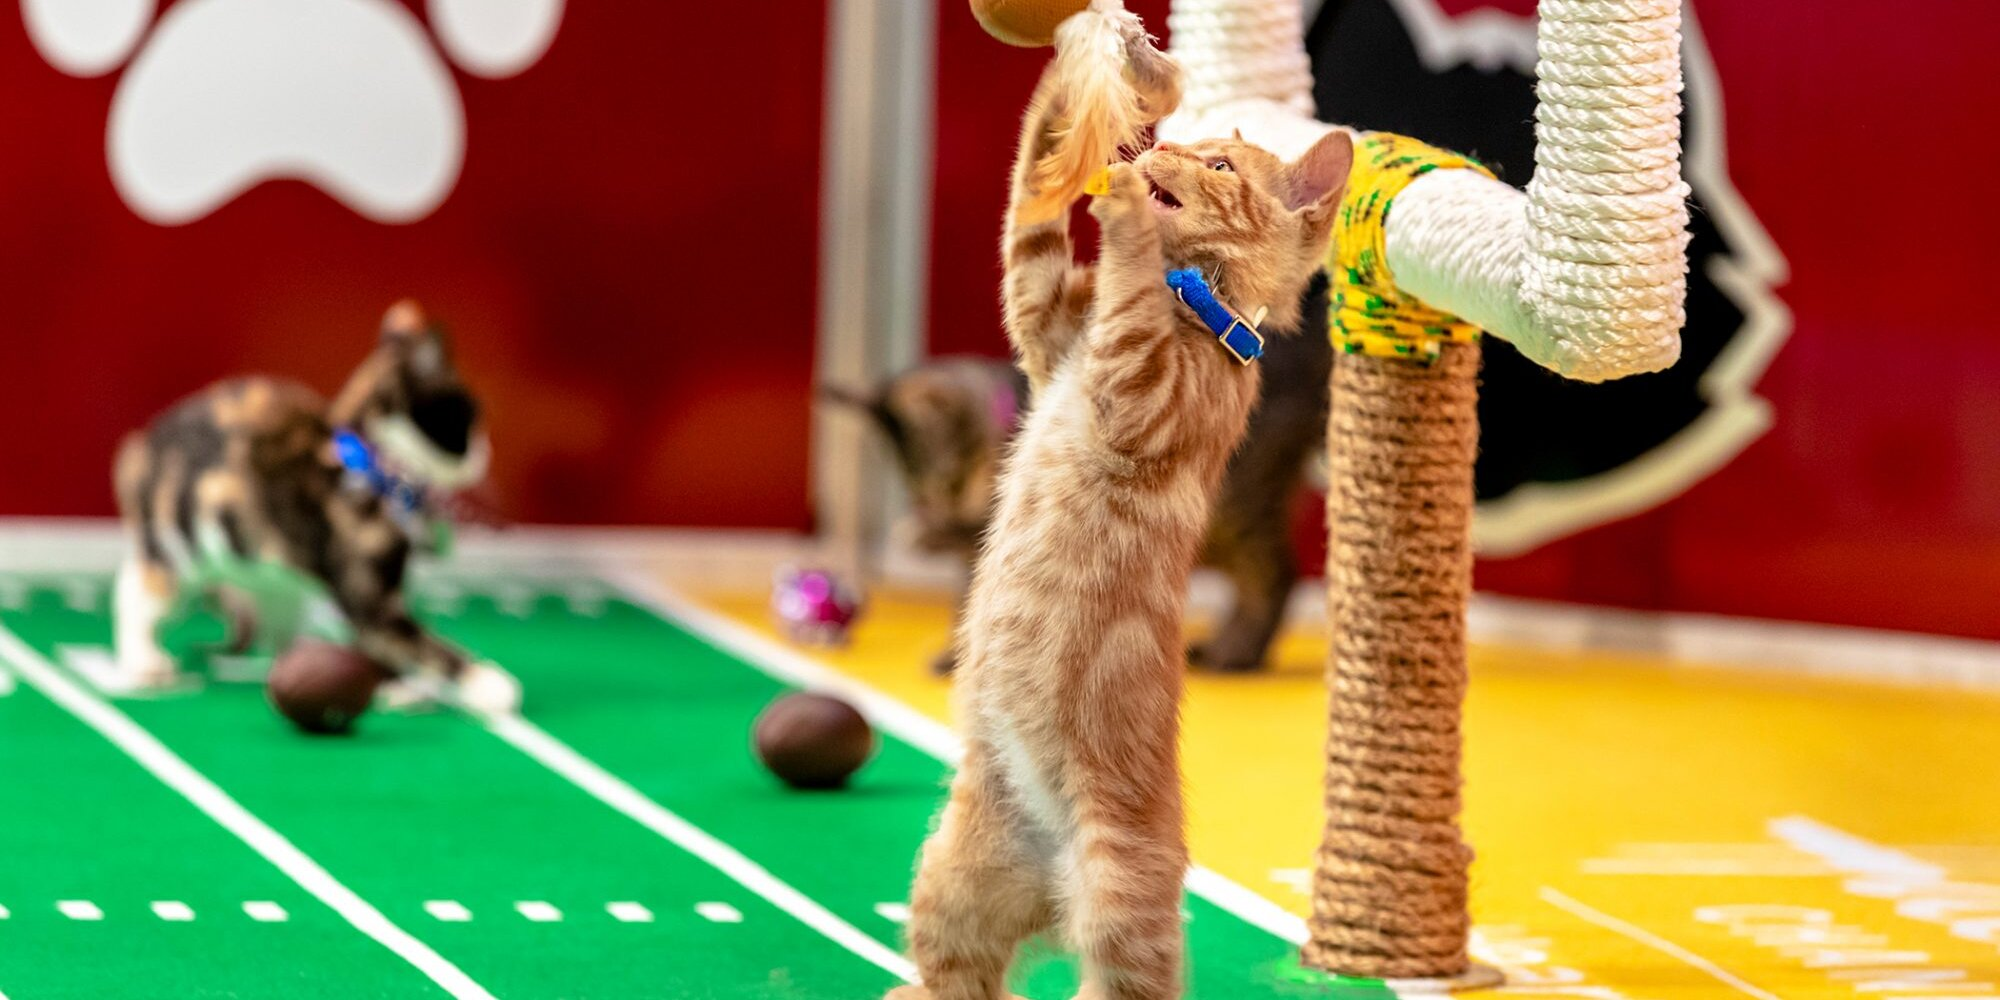 Kitten Bowl Is Back to Bring Even More Cuteness to Super Bowl Sunday 2021